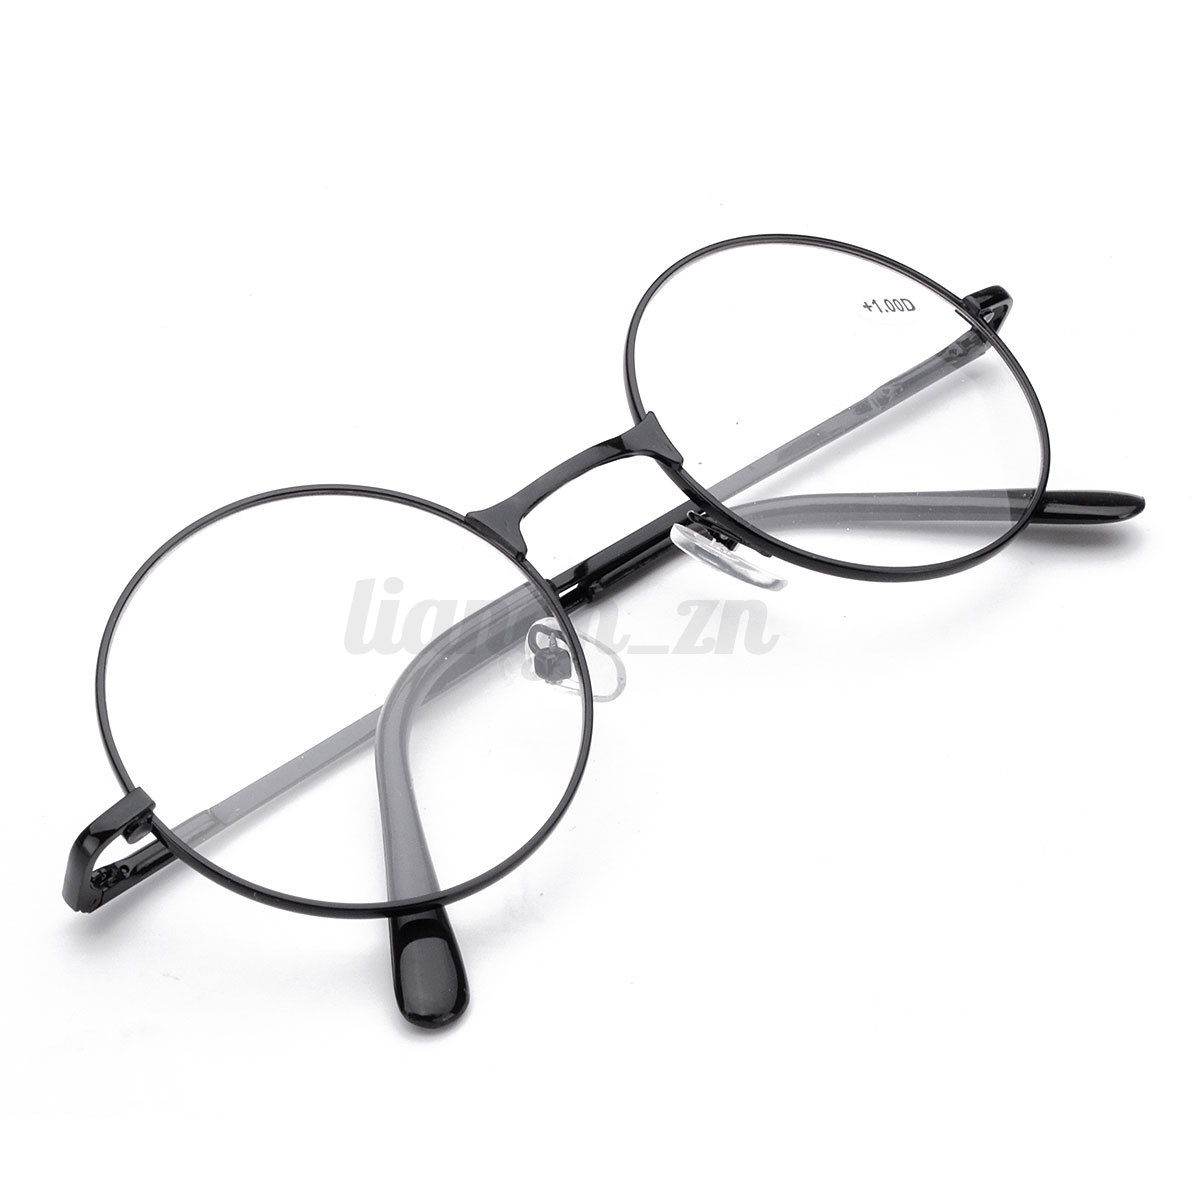 lunettes de lecture rondes presbyte dioptrie loupe vue m tal unisex femme homme ebay. Black Bedroom Furniture Sets. Home Design Ideas